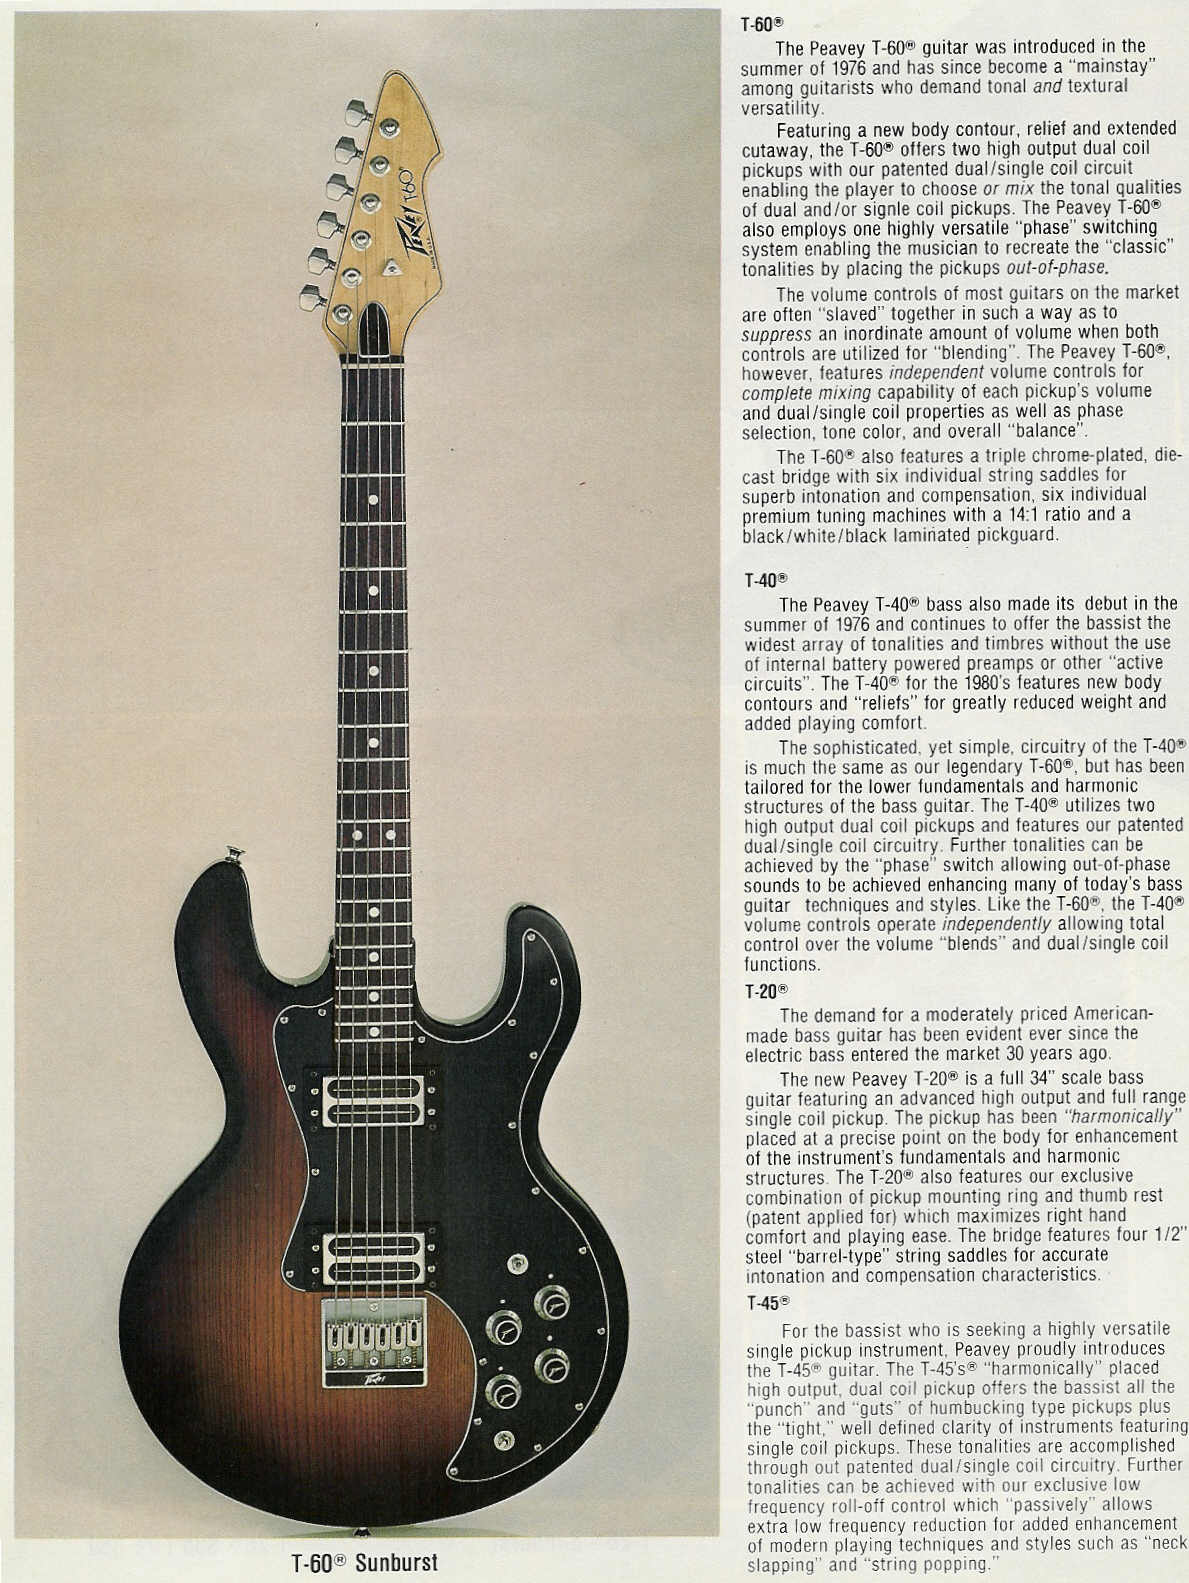 pdf for Peavey Guitar T40 manual